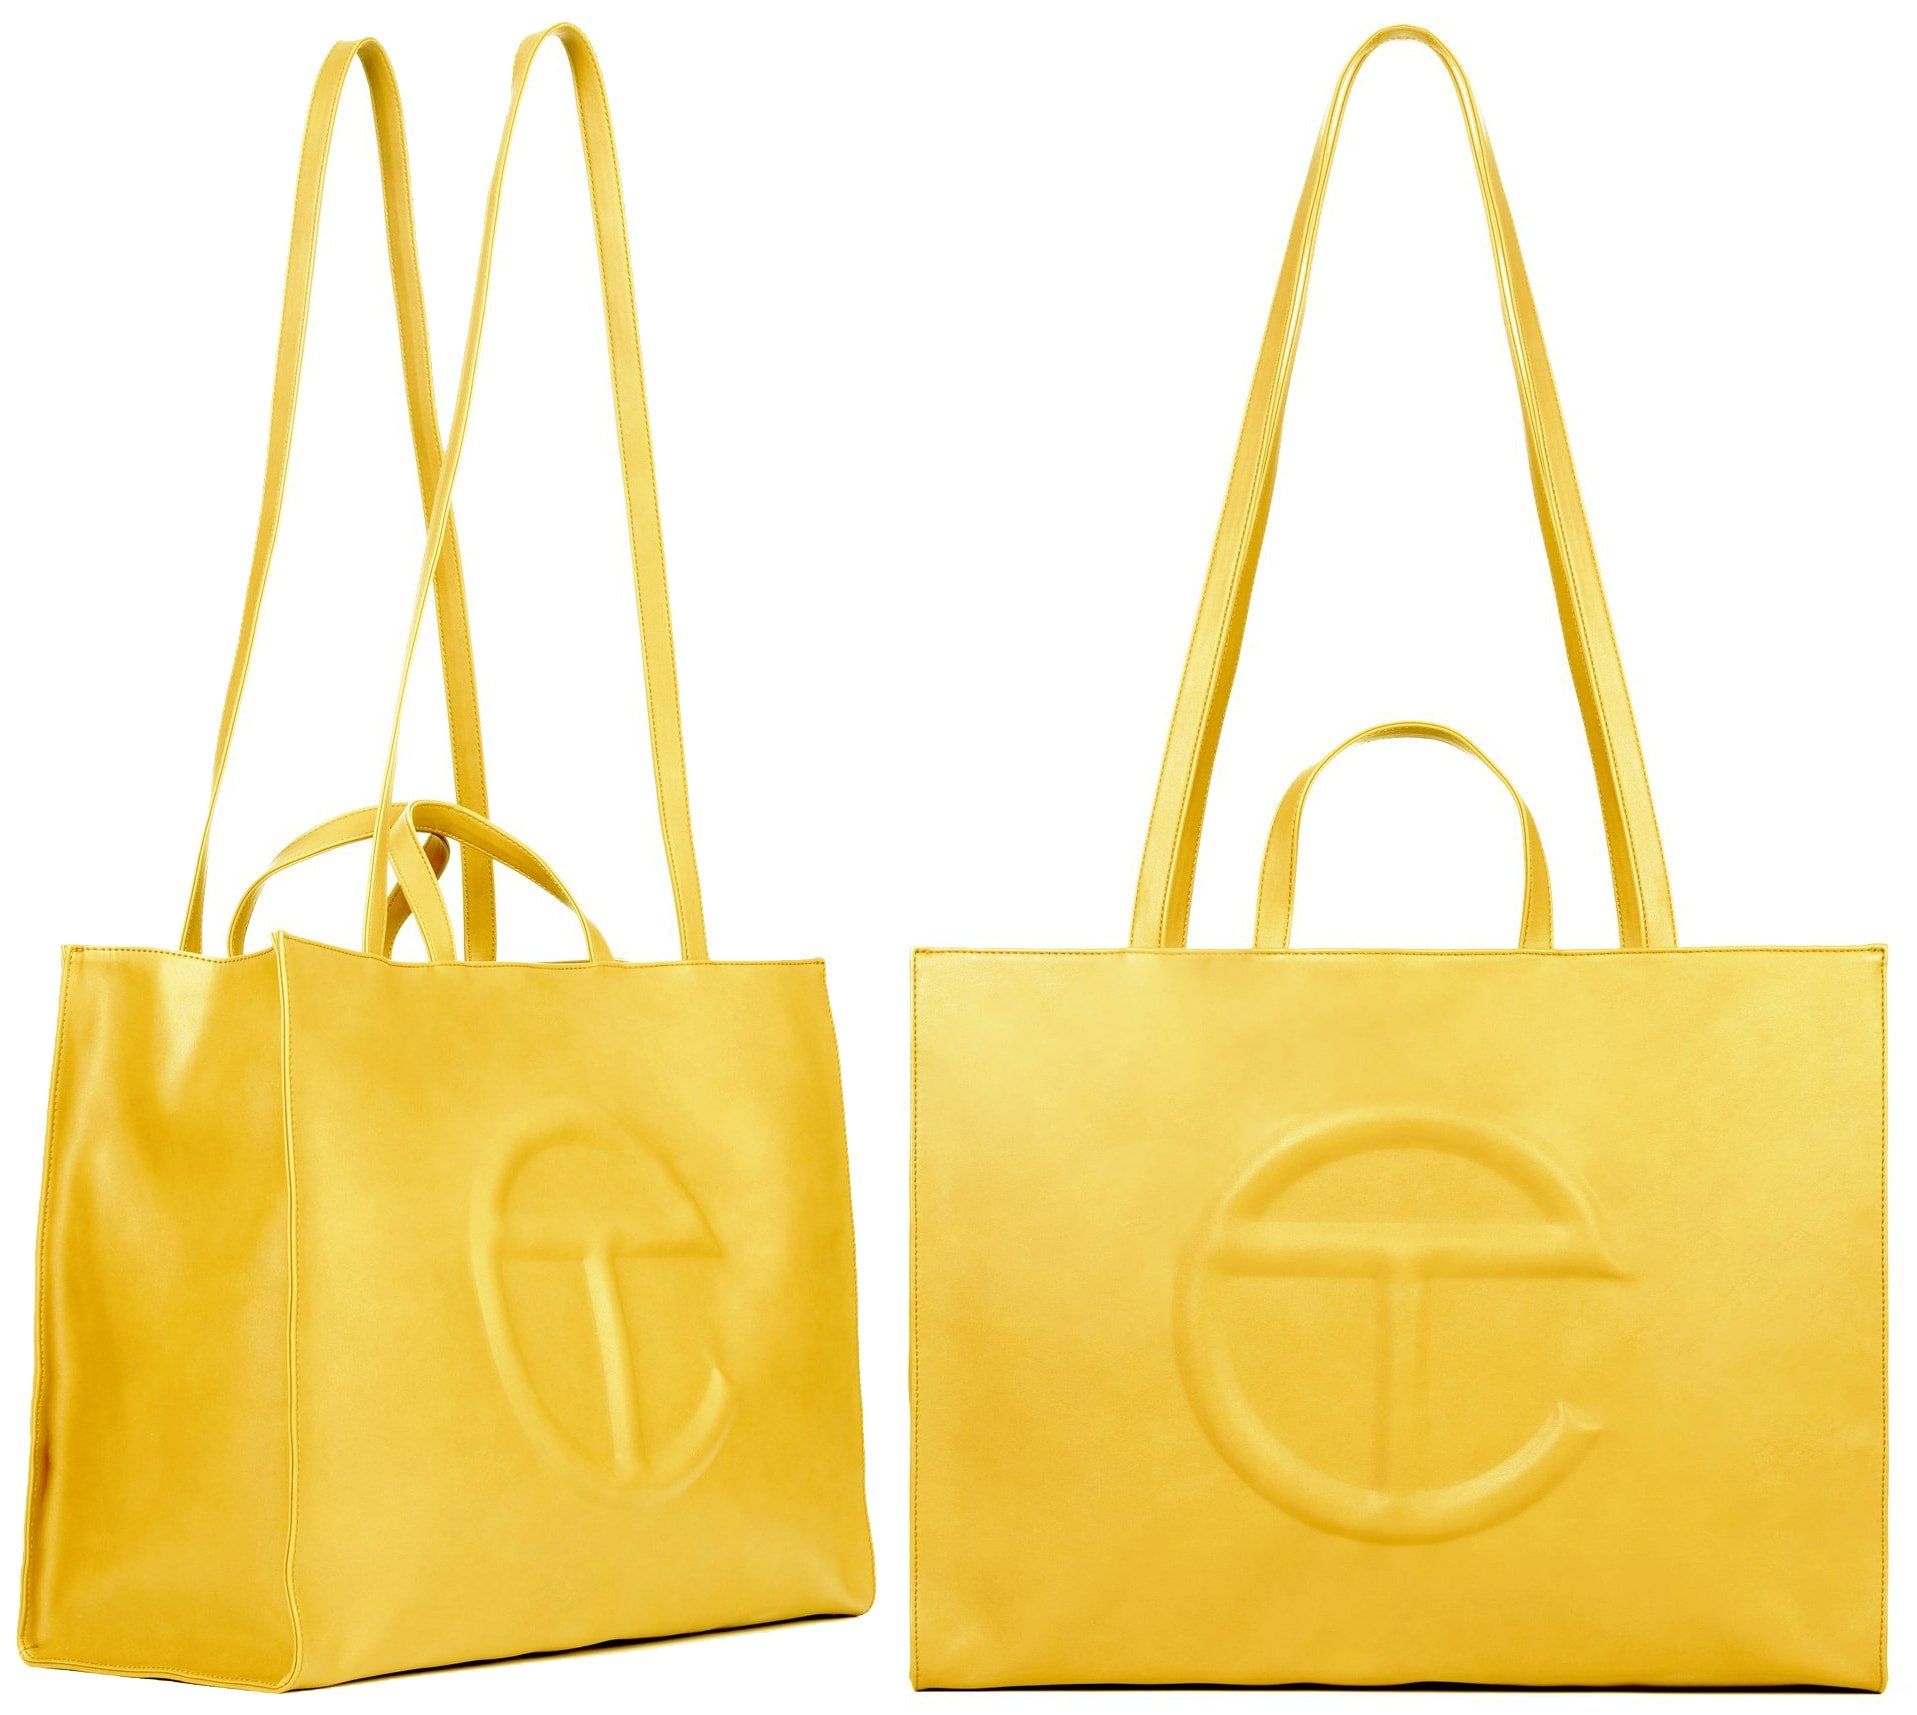 Telfar's large yellow shopping bag is one of the most popular as it comes in this year's hottest color